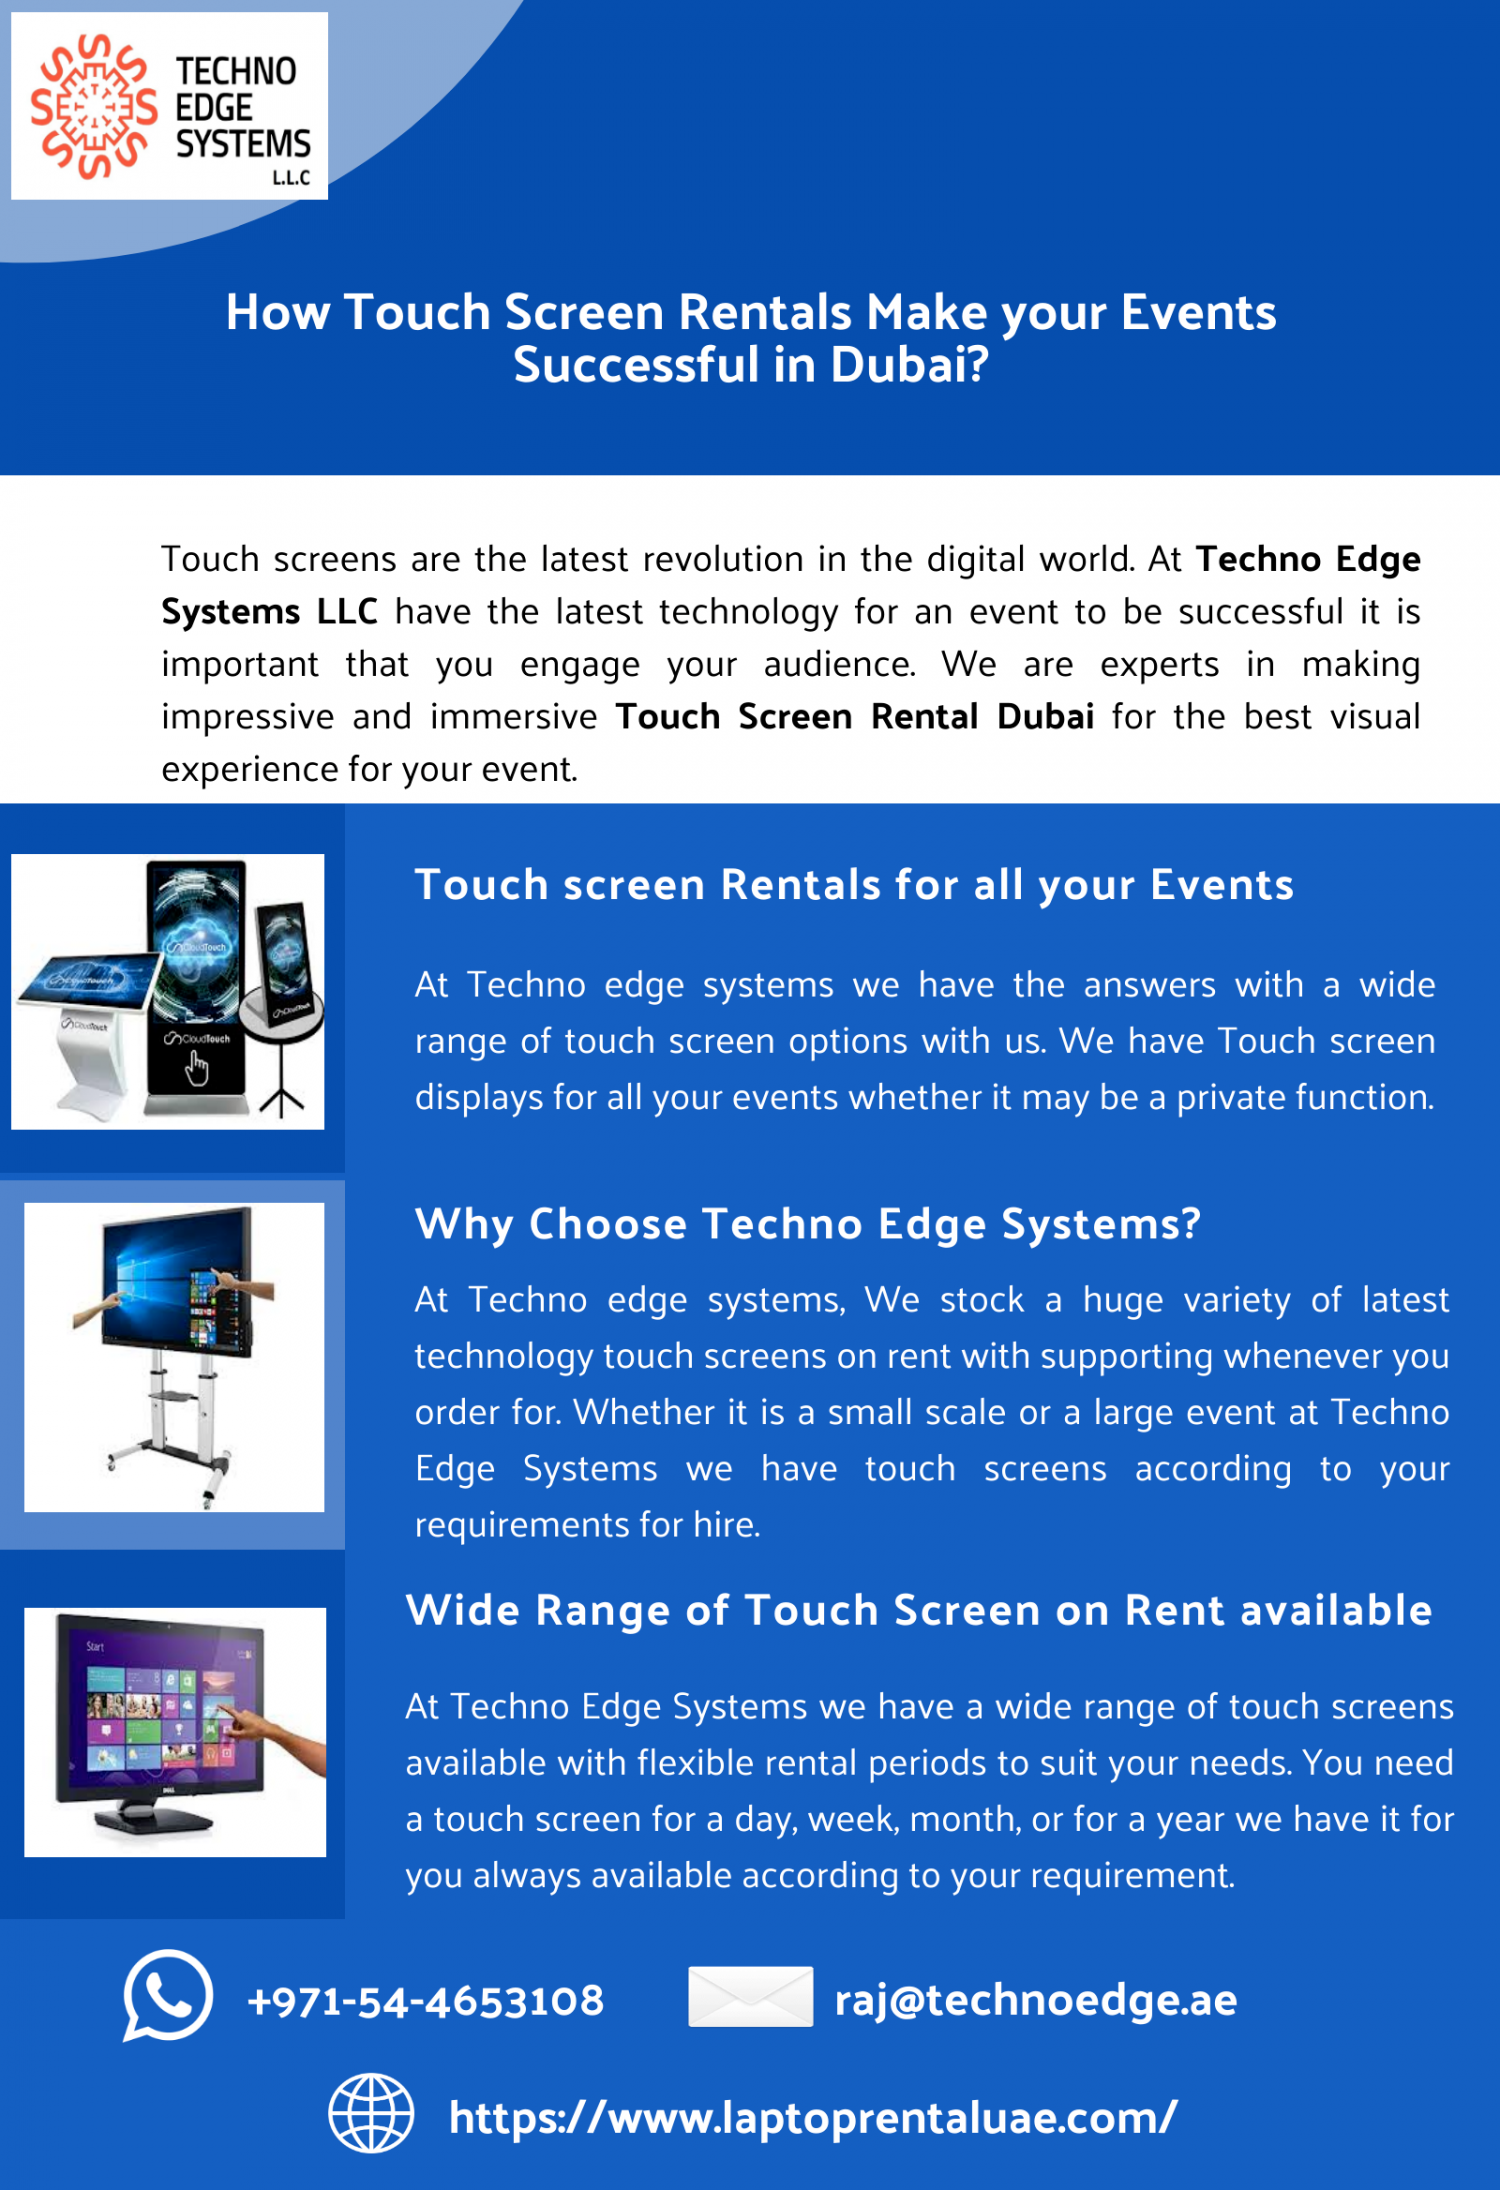 How Touch Screen Rentals Make your Events Successful in Dubai? Infographic